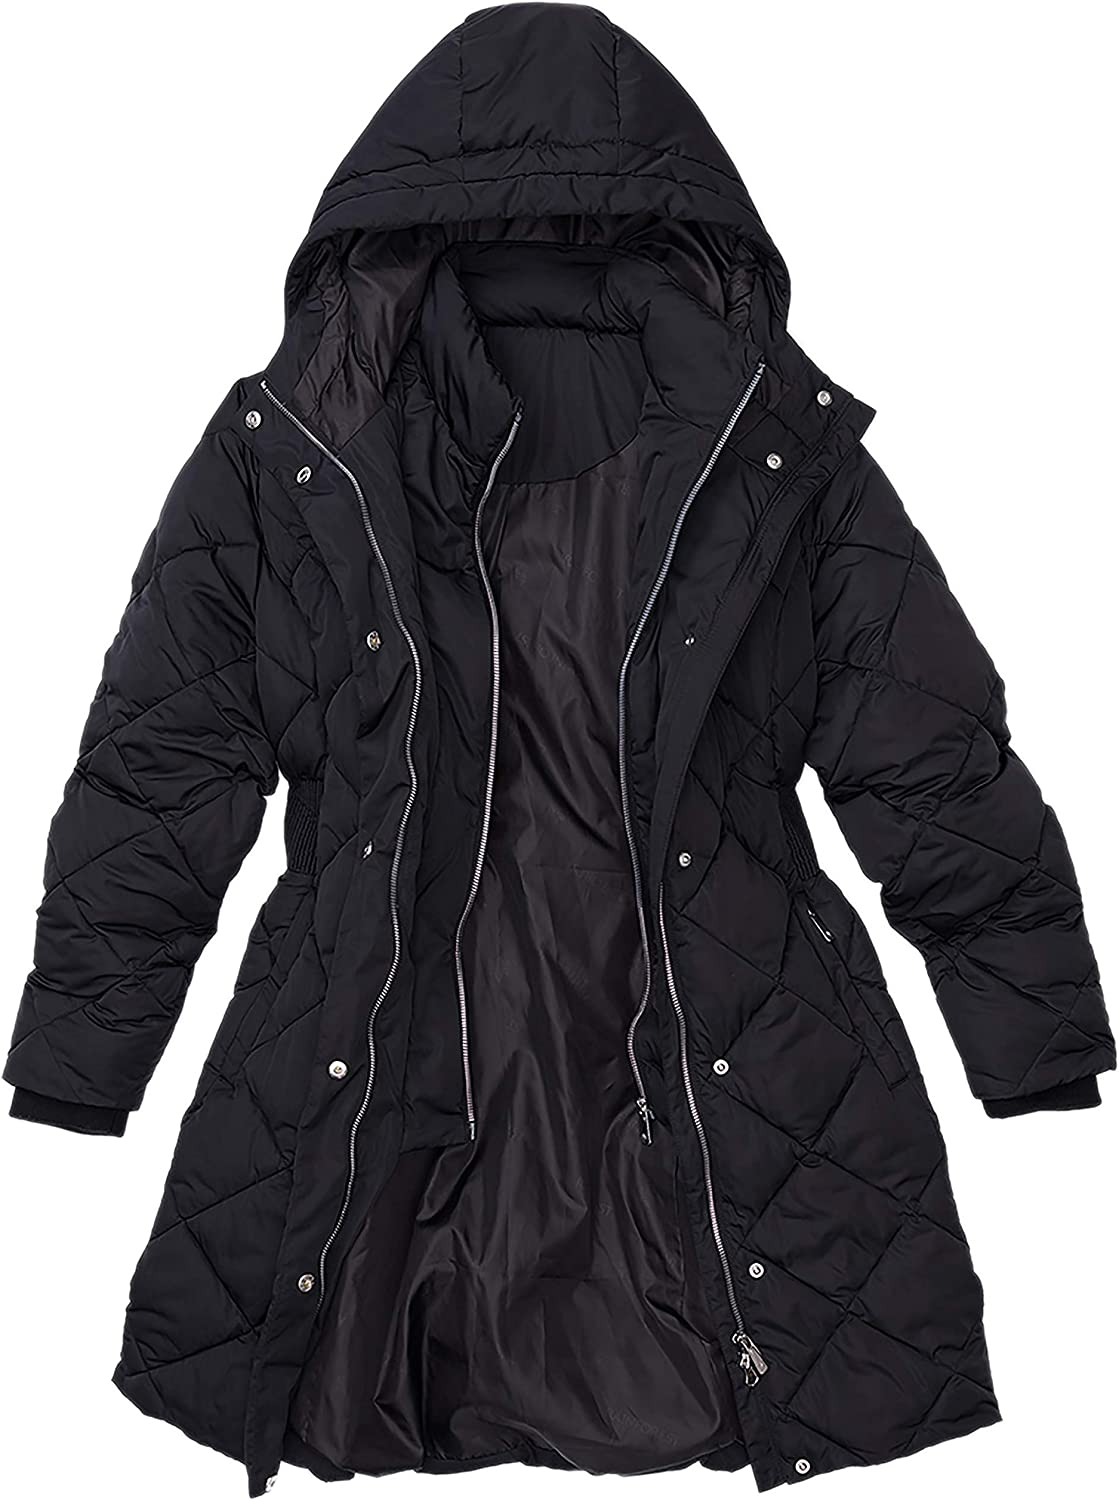 Diamond Quilted ThermoLuxe Winter Jacket Limited price Ranking TOP1 Large for Black Women